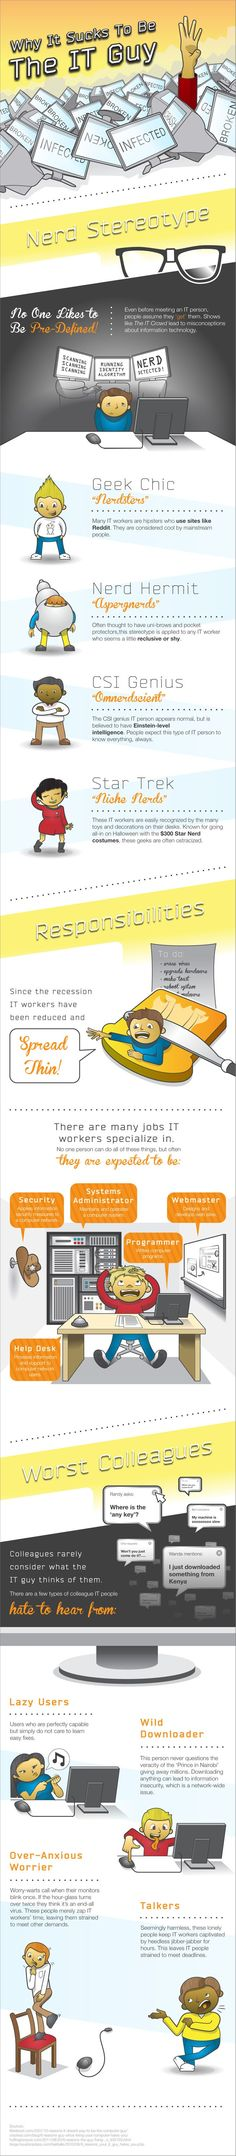 Tongue in cheek infographic - Why it sucks to be the IT guy Doomsday Prepping, Applied Science, Geek Humor, Job Humor, Information Graphics, Information Technology, Career Advice, New Technology, Fun Facts